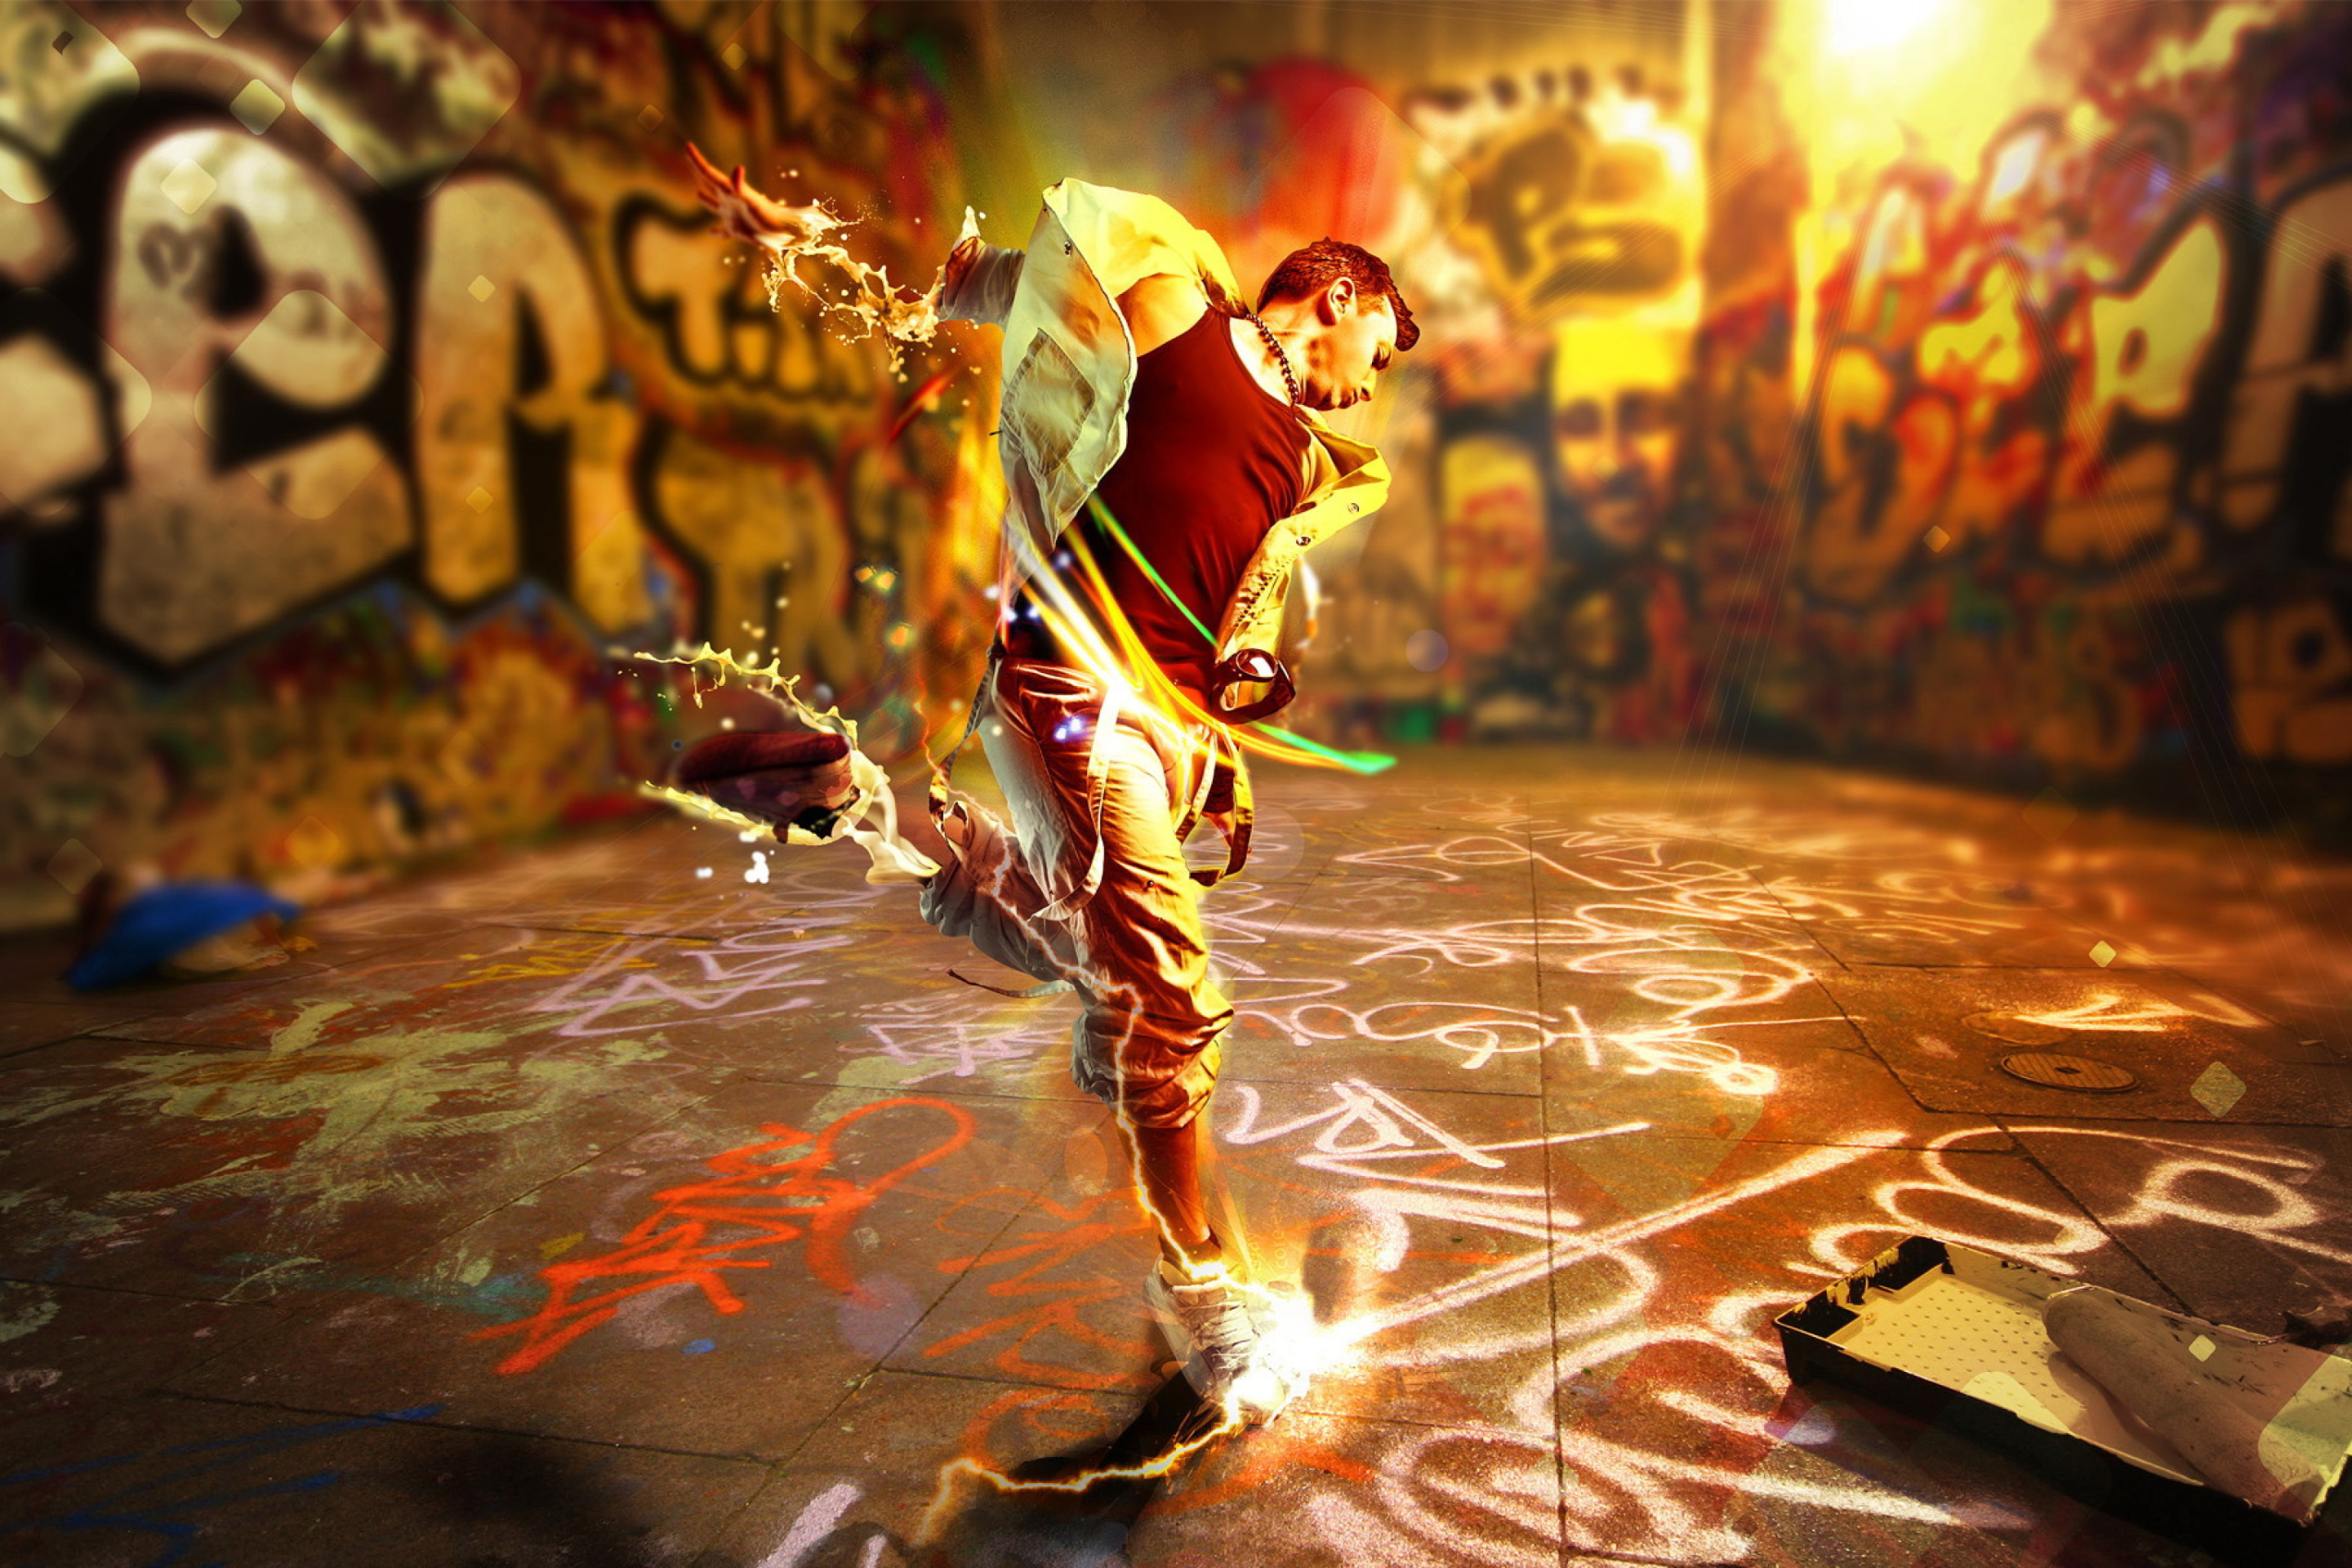 Das Street Dance Wallpaper 2880x1920